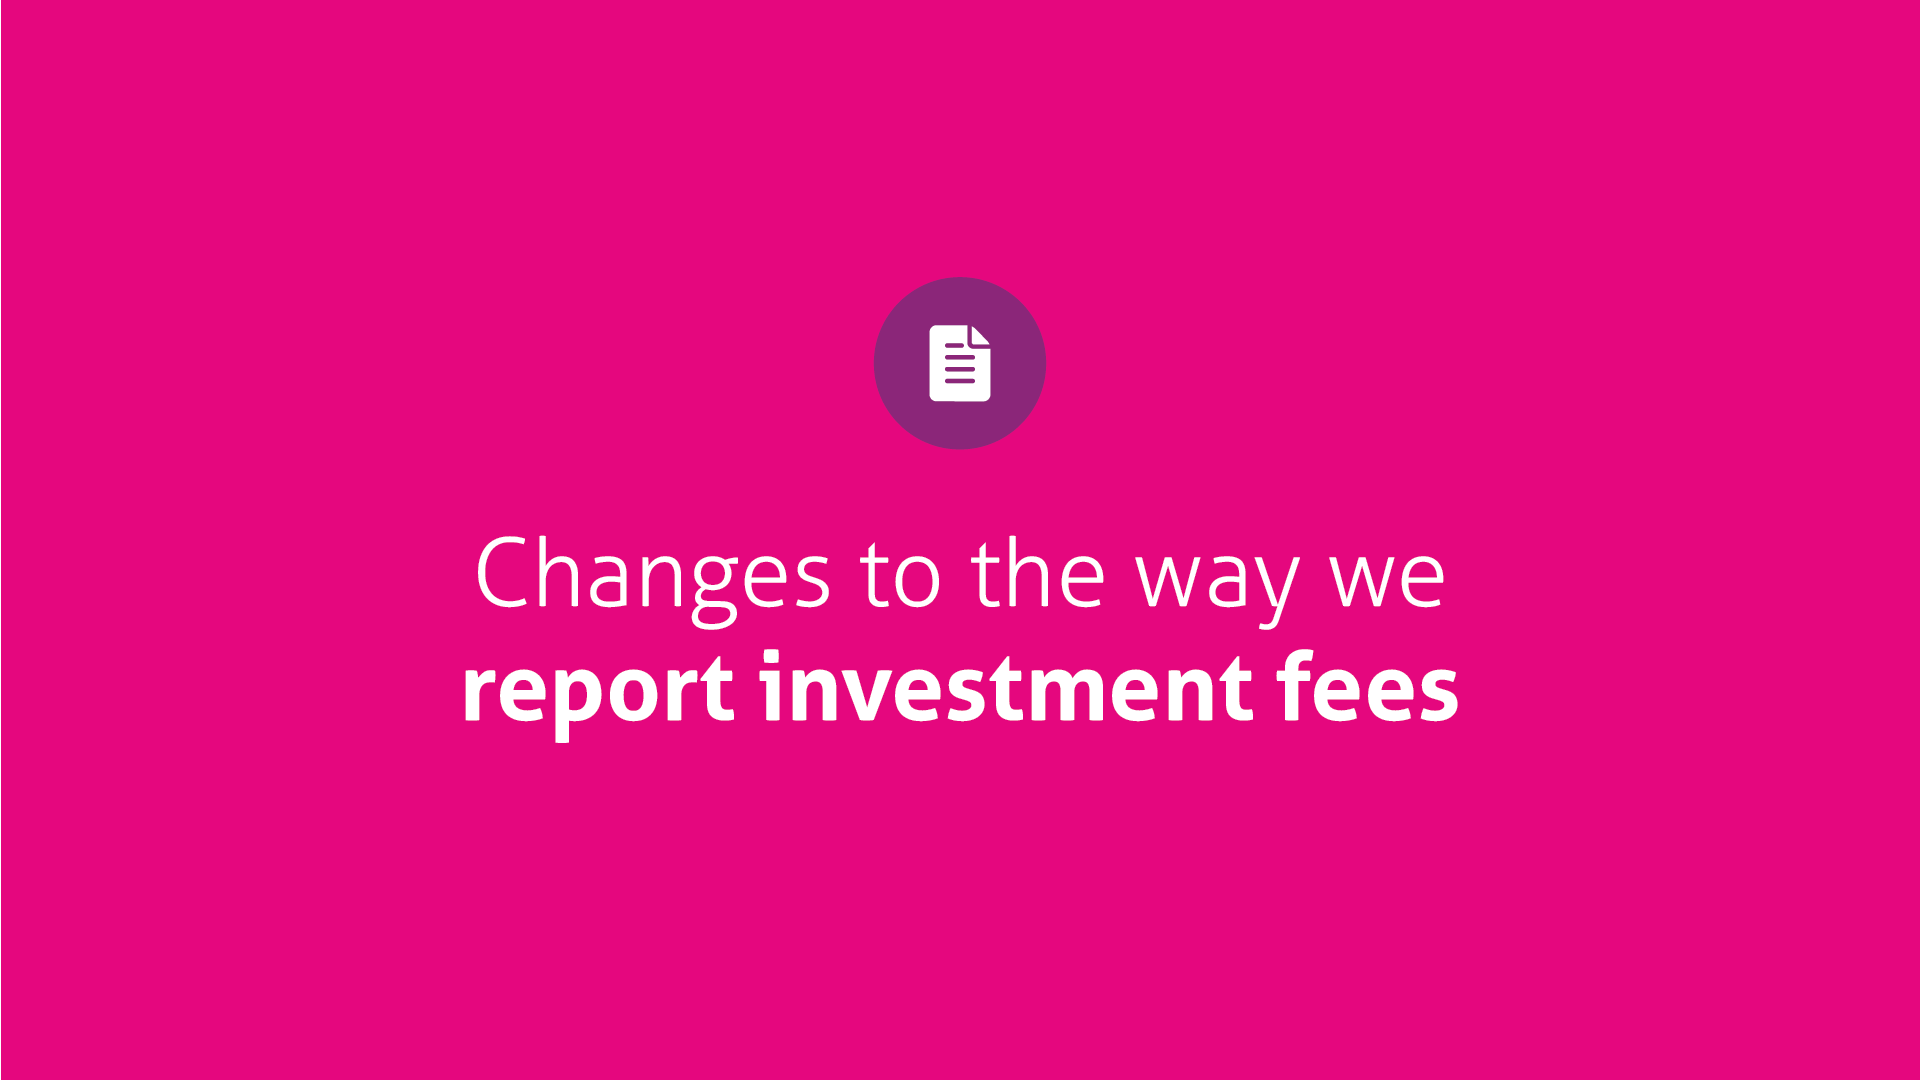 Changes to the way we report fees